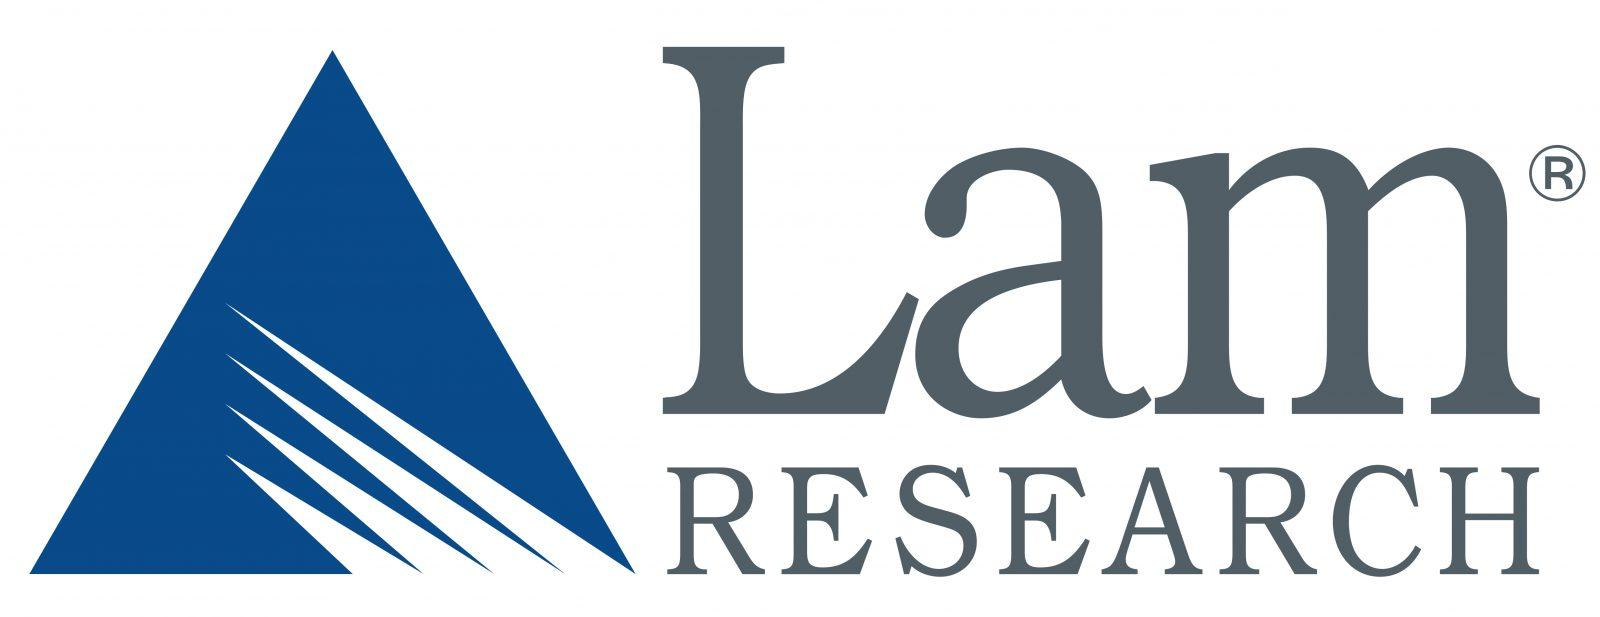 it stock the most prominent it companies in 2017 feedster lam research 1 82 1 49%